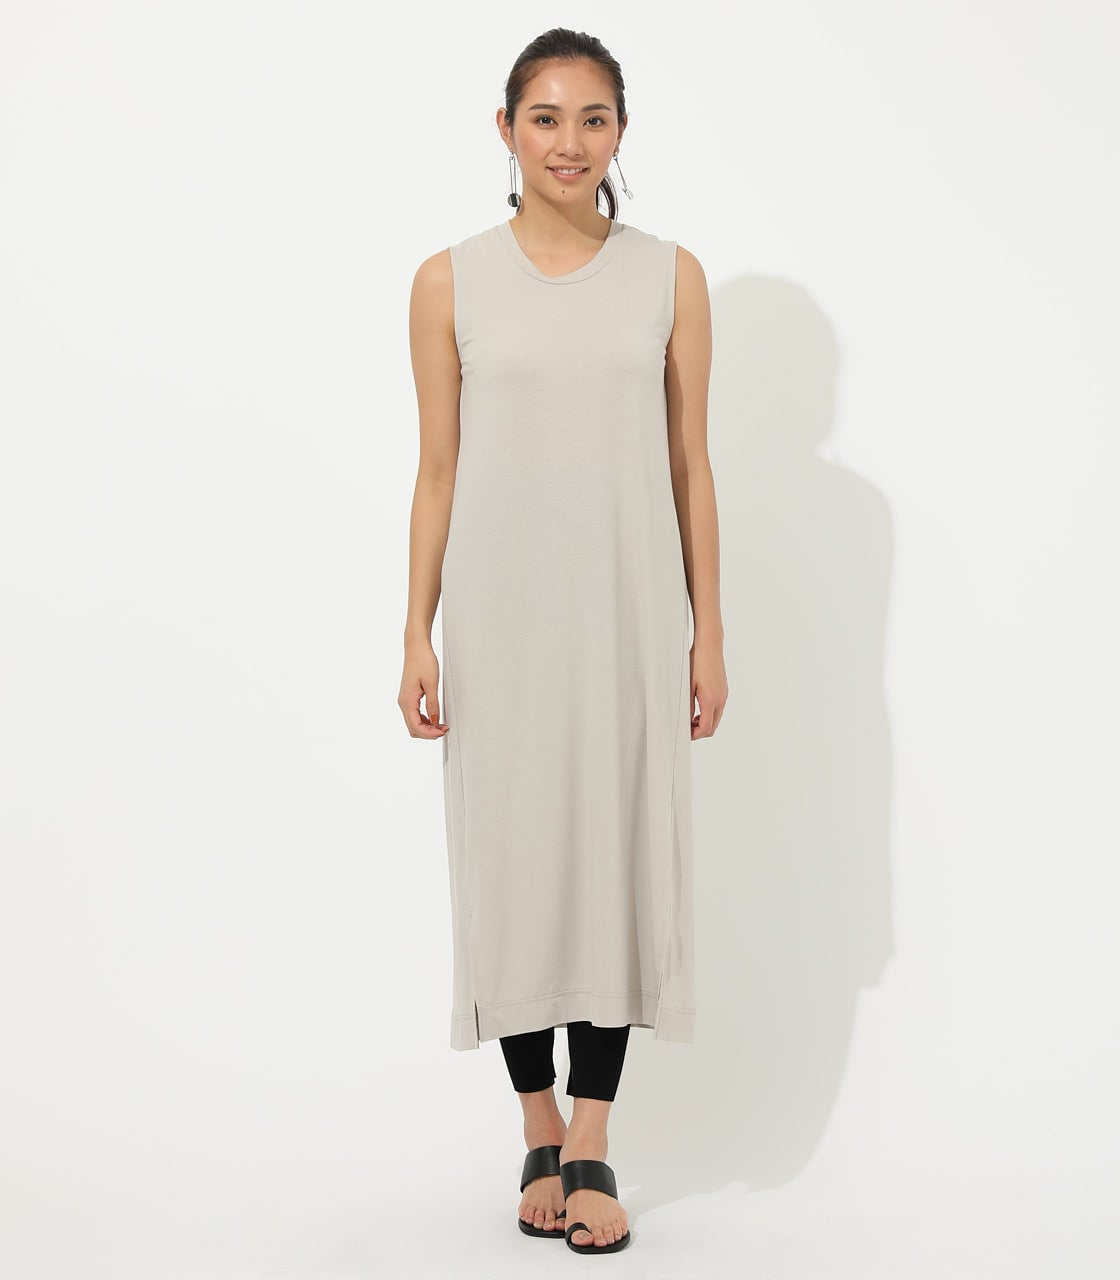 【AZUL BY MOUSSY】ICE CLEAN MAXI ONEPIECE【MOOK50掲載 90150】 詳細画像 L/BEG 4